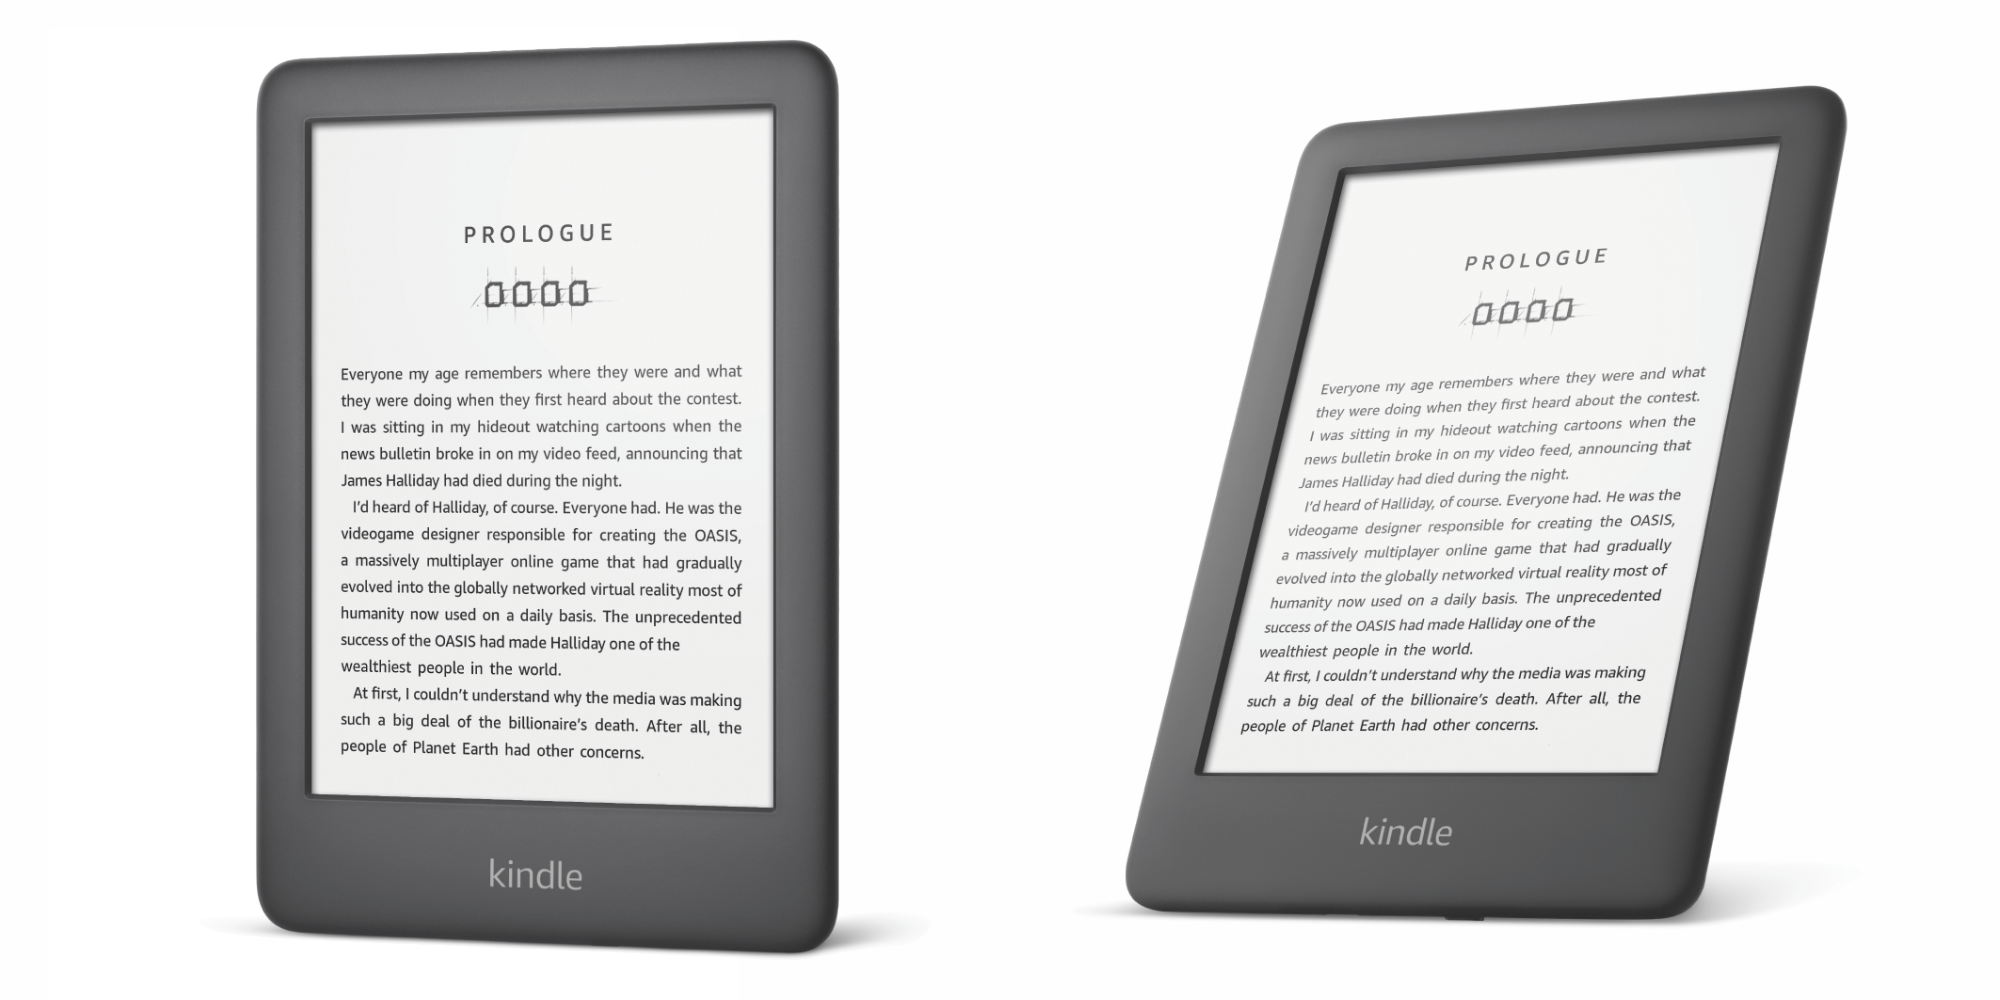 Amazon Kindle Amazon All New Kindle Enters As A More Affordable E Reader 9to5toys